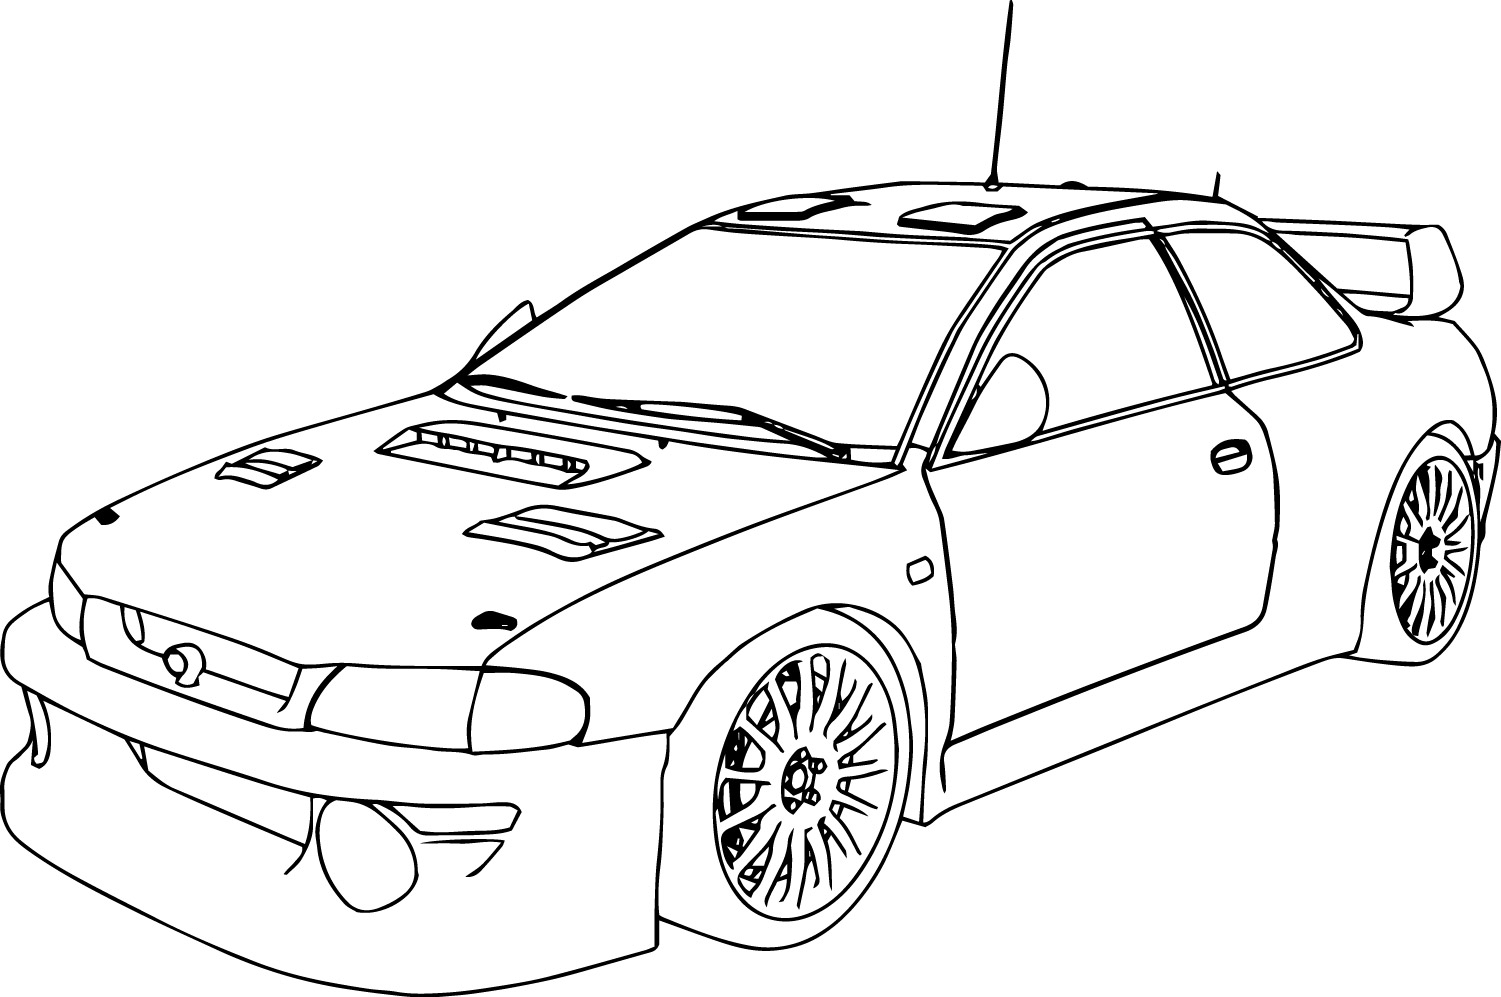 Racing Cars Drawing at GetDrawings.com | Free for personal use ...